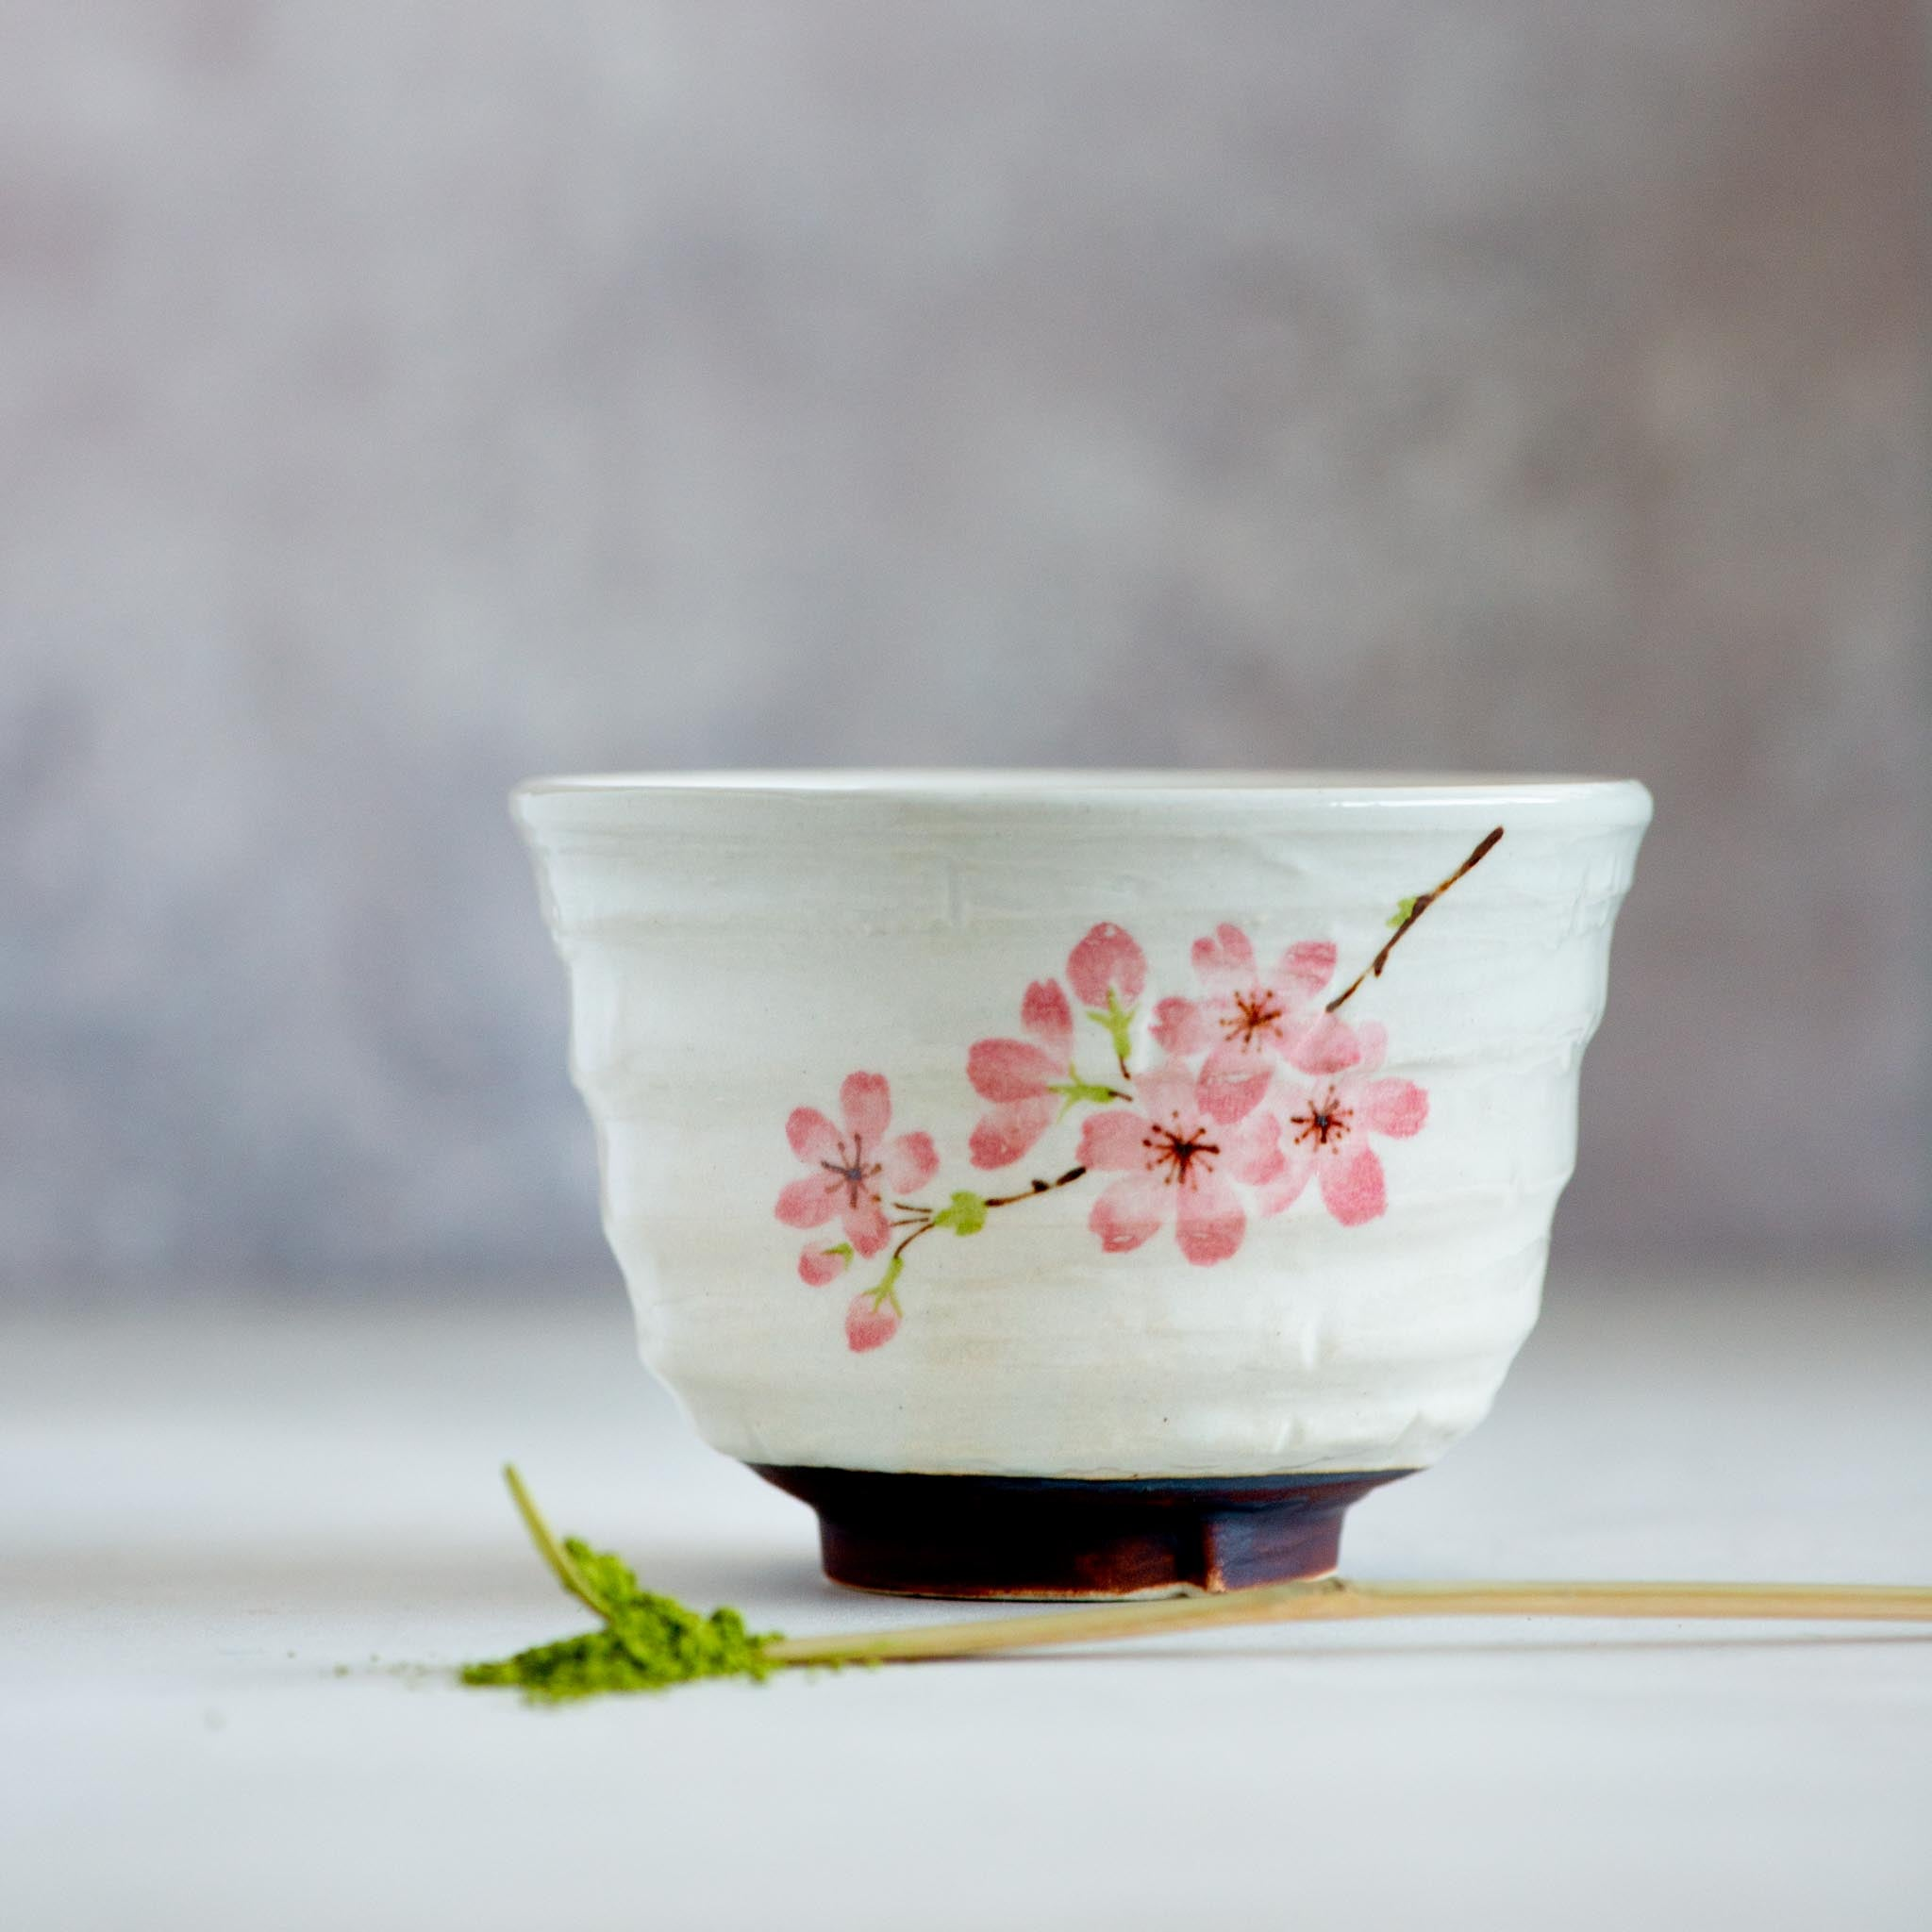 Kiji Stoneware & Ceramics Sakura Blossom Matcha Bowl Tableware Japanese Tableware Japanese Food